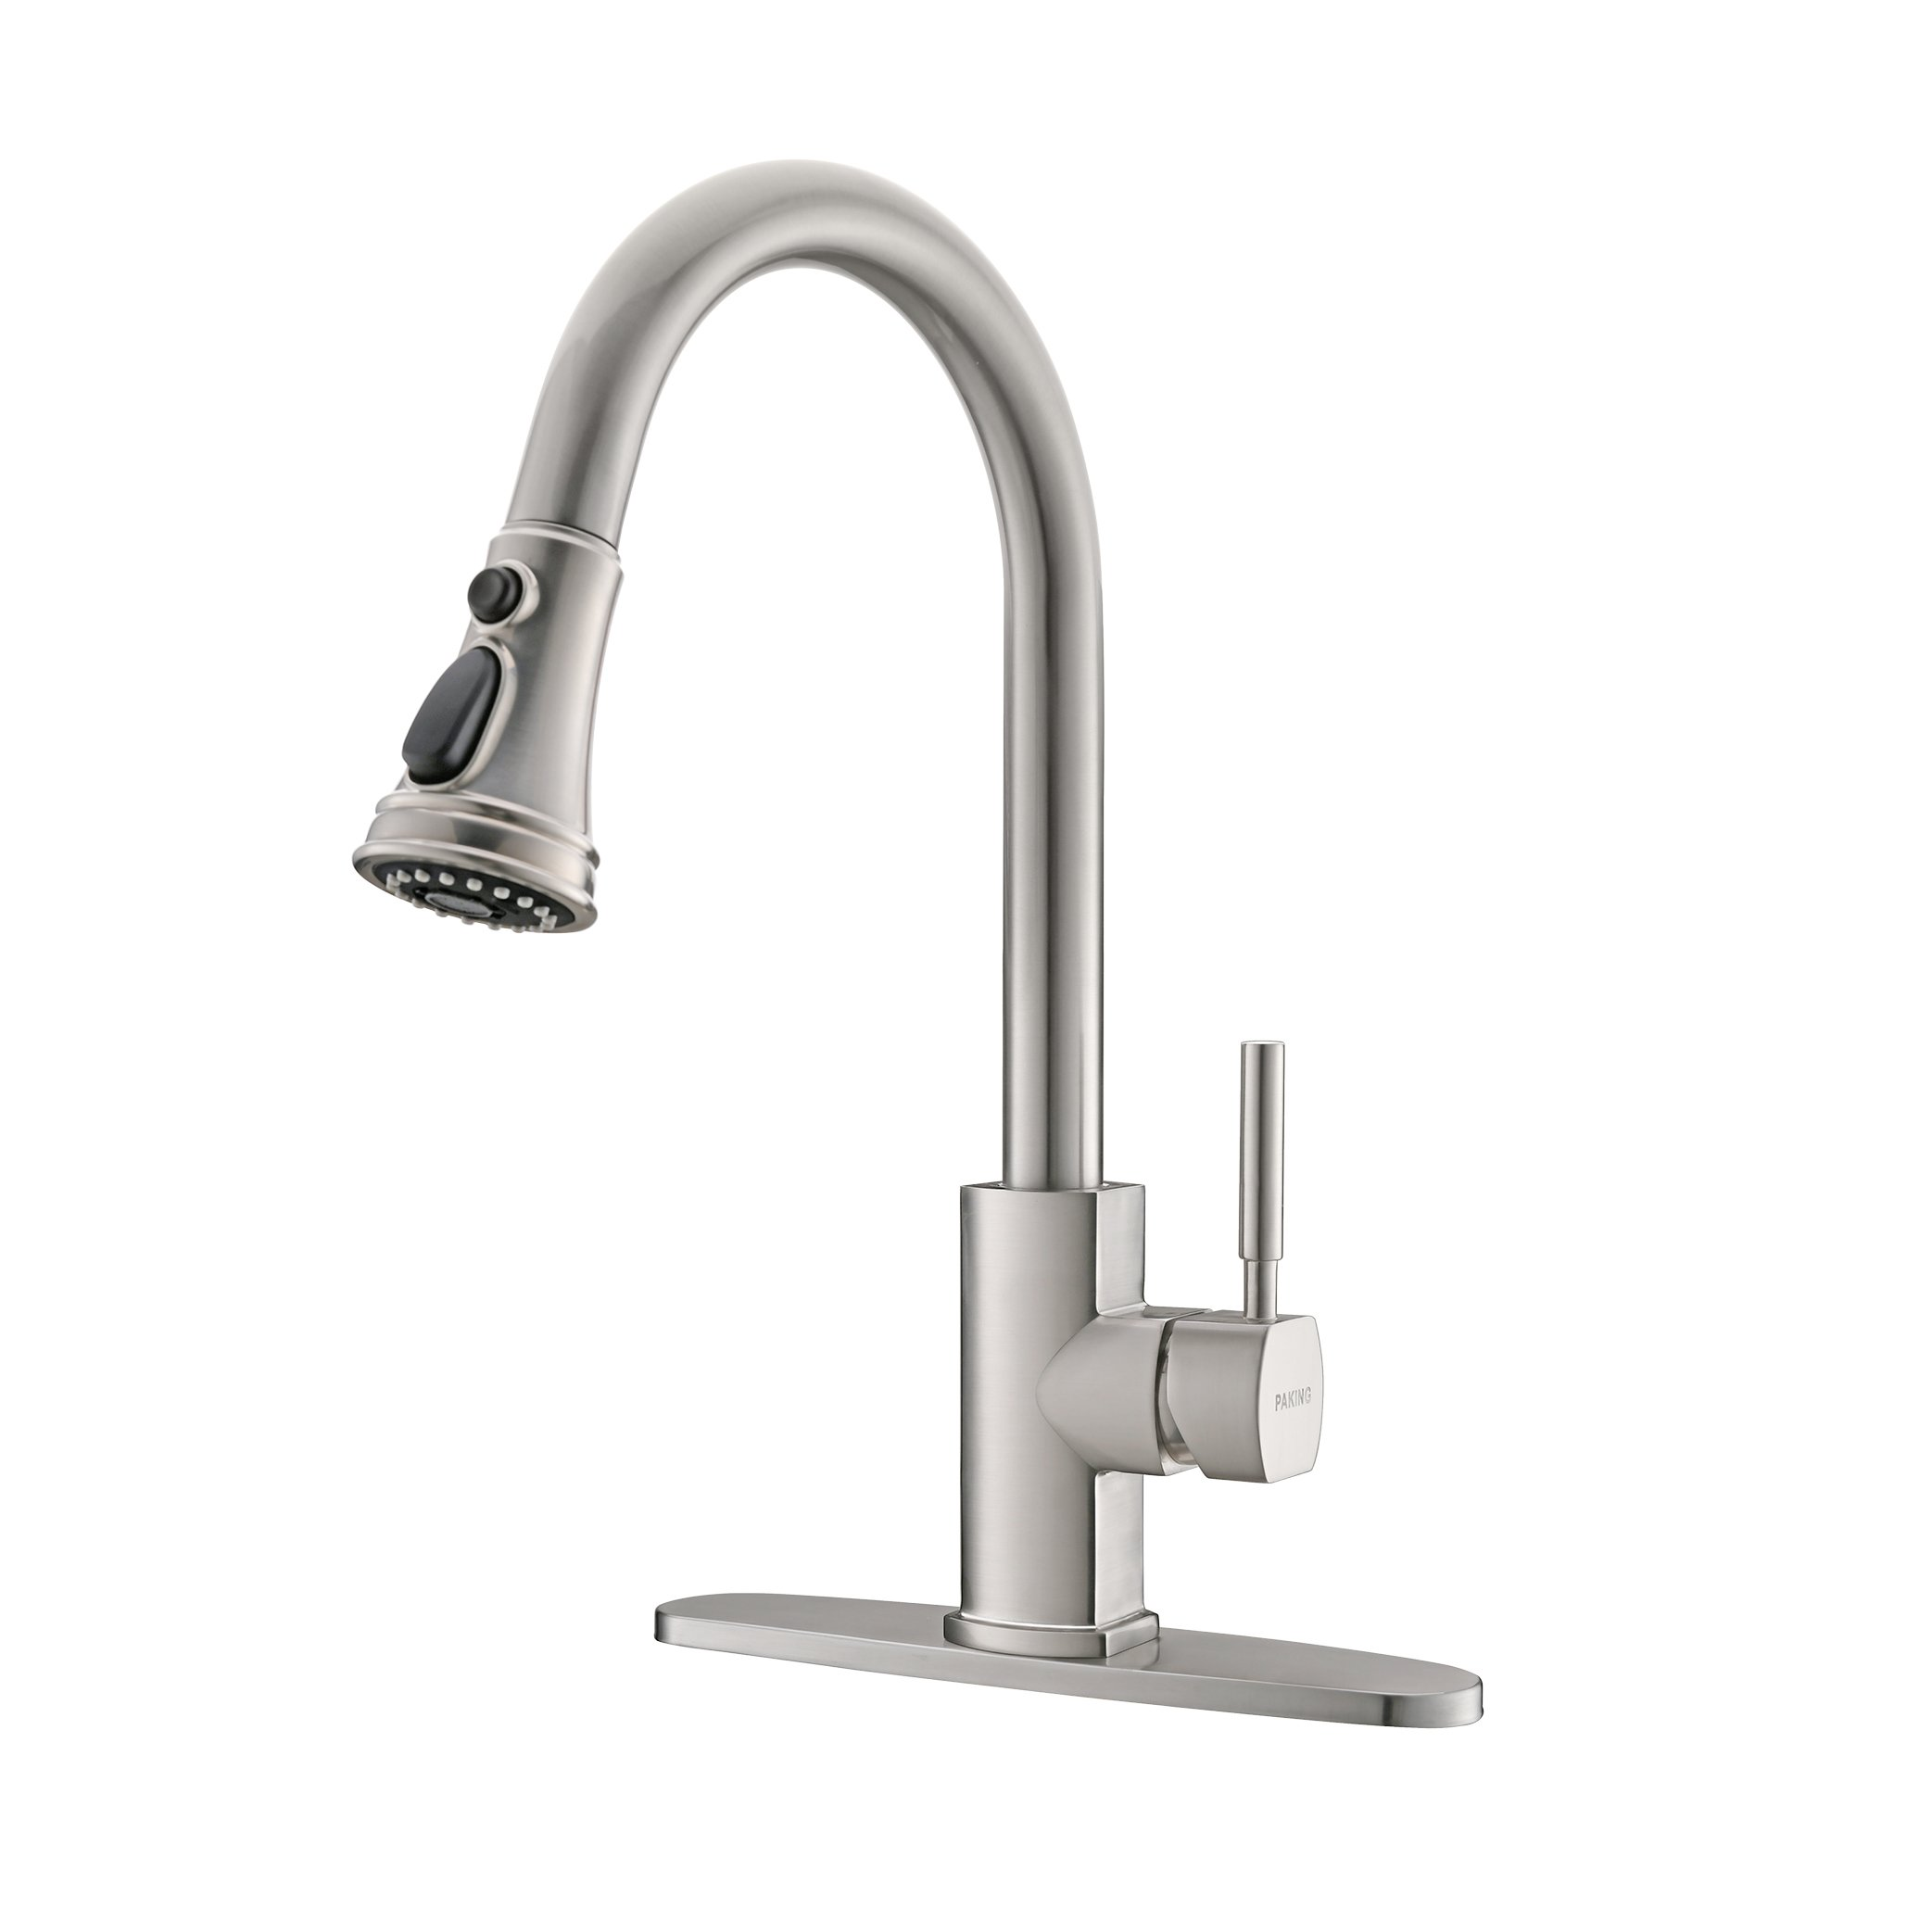 PAKING Kitchen Faucet, Kitchen Sink Faucet, Sink Faucet, Brushed Nickel Kitchen Faucets with Pull-down Sprayer, Stainless Steel Bar Kitchen Faucet, Sweep Spray